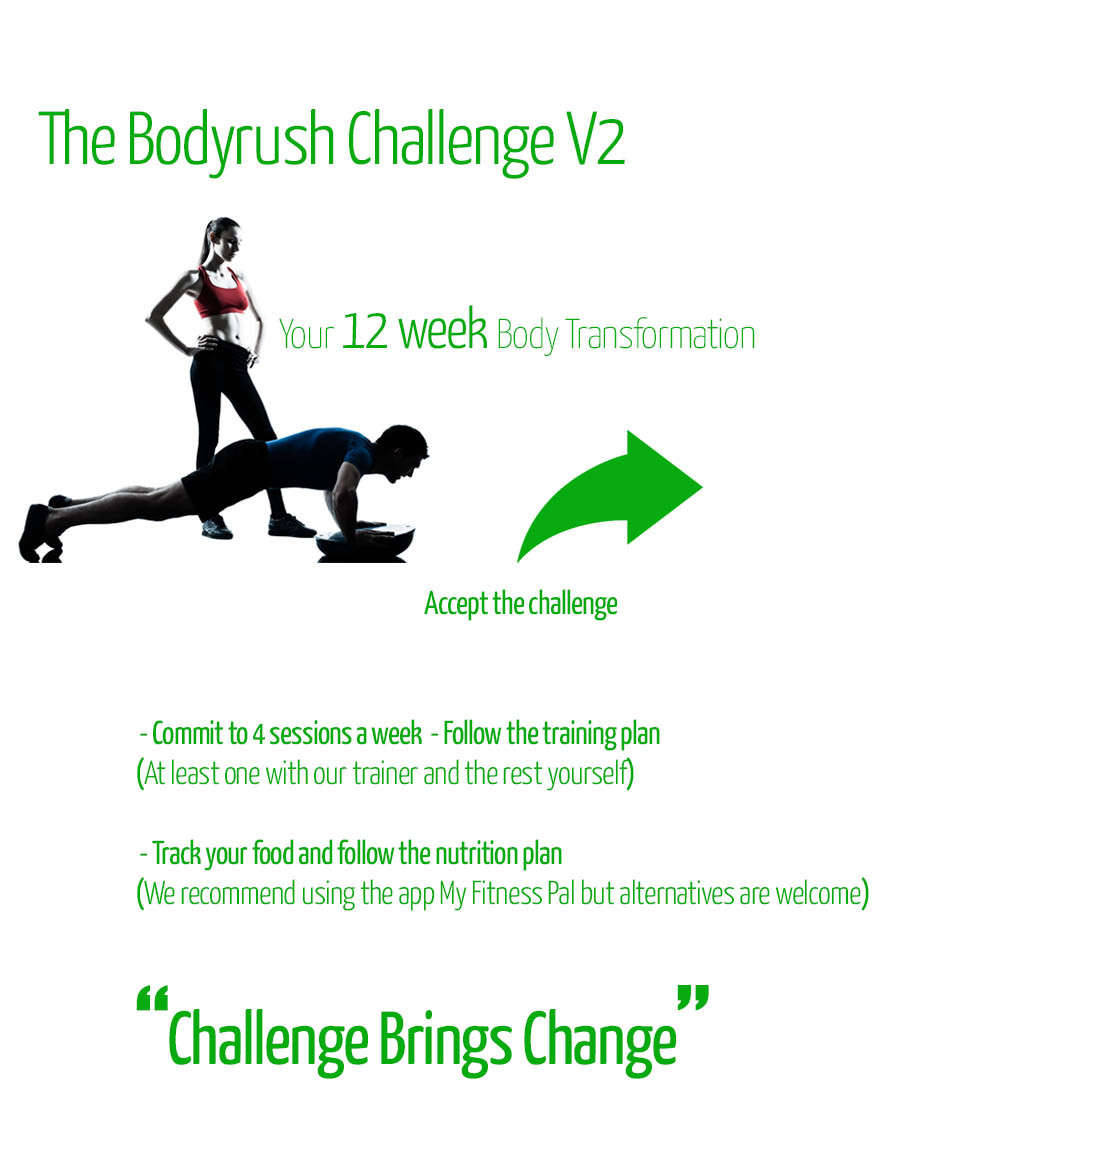 Personal Trainer Chiswick Bodyrush challenge V2